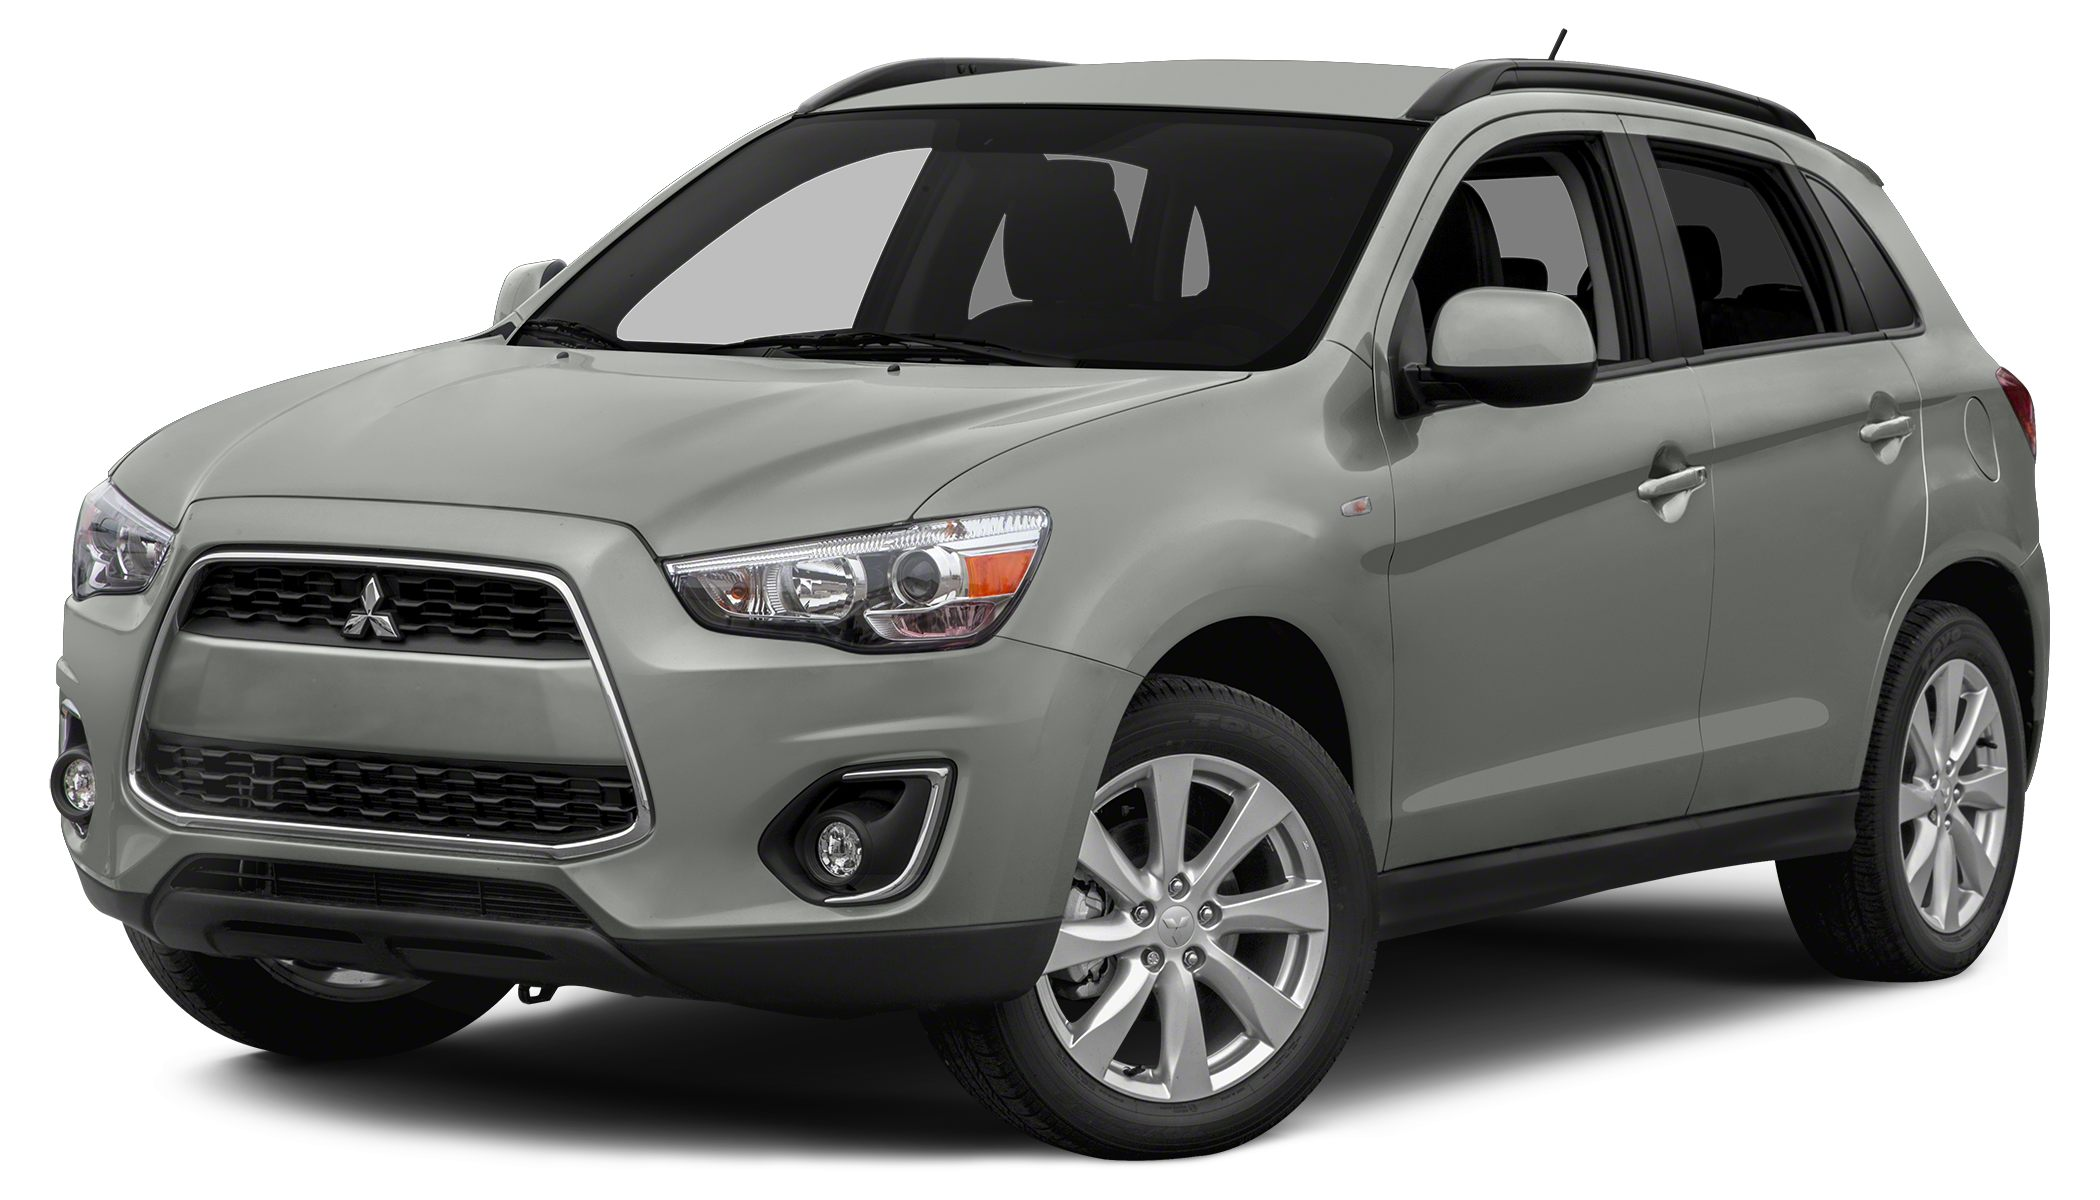 2014 Mitsubishi Outlander Sport ES WE SELL OUR VEHICLES AT WHOLESALE PRICES AND STAND BEHIND OUR C